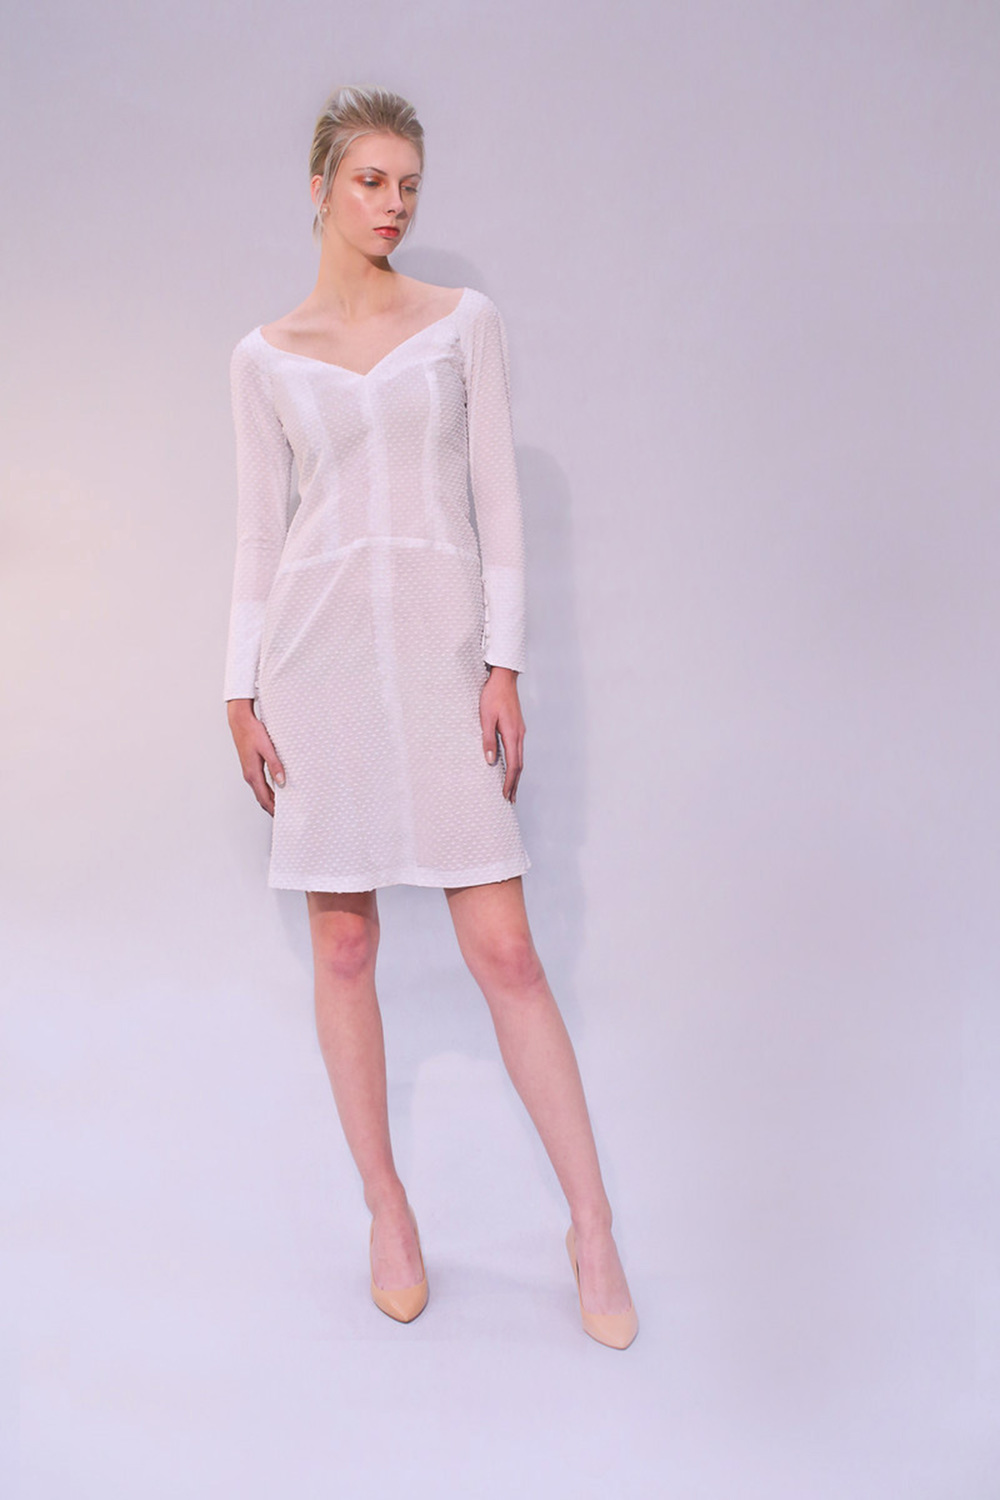 GHOST ORCHID DRESS WHITE